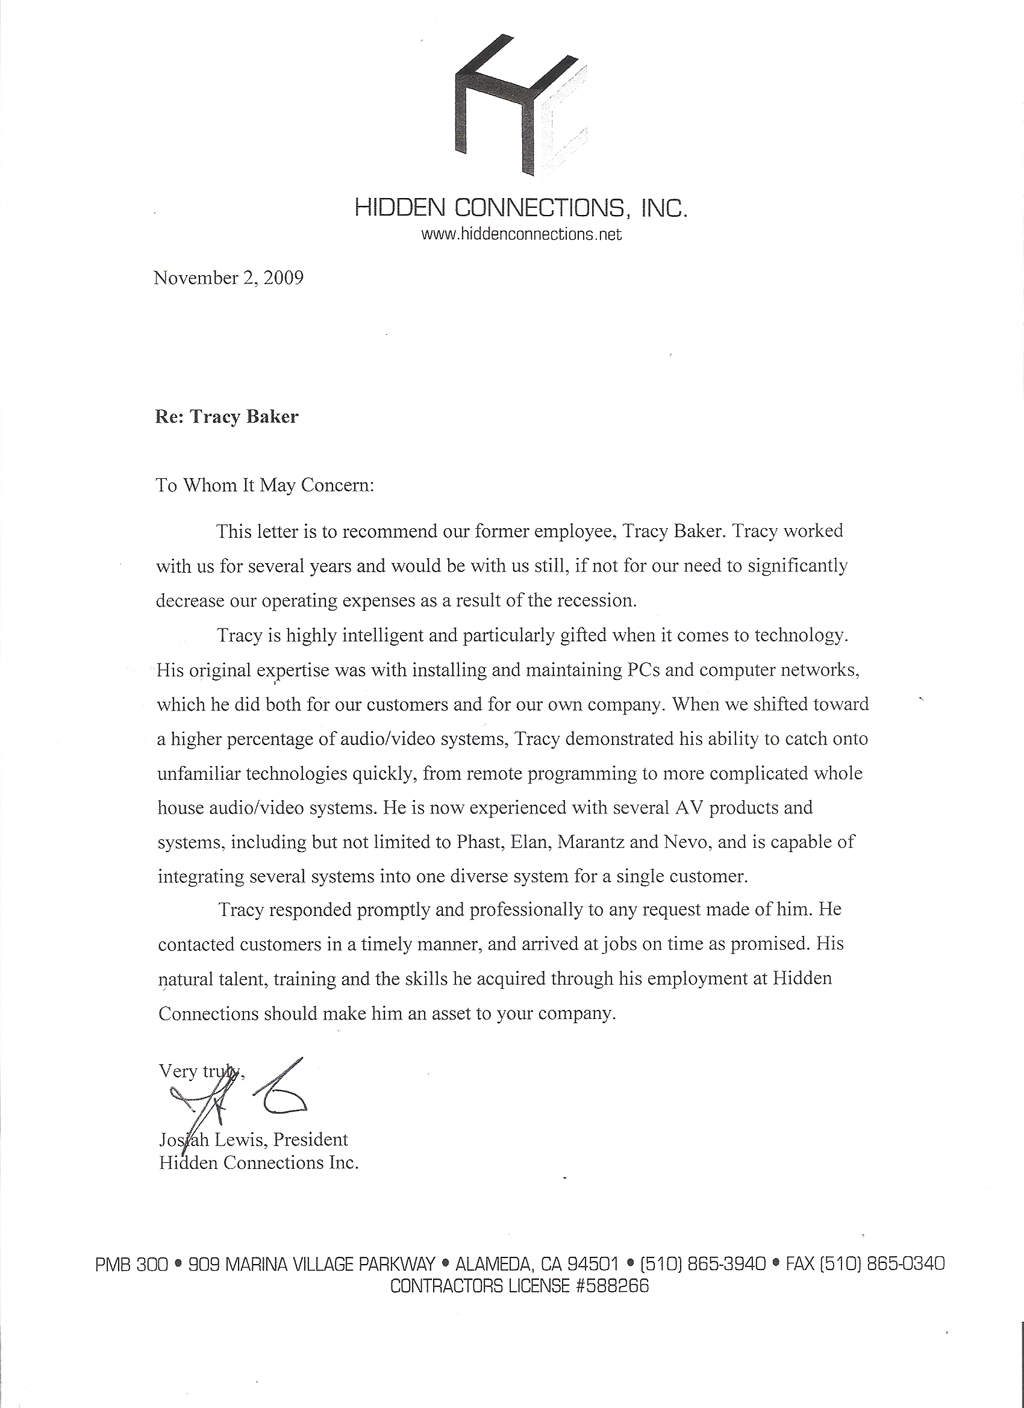 Letter Of Recommendation For A Job From Previous Employer Letter – Sample Professional Letter of Recommendation for Job